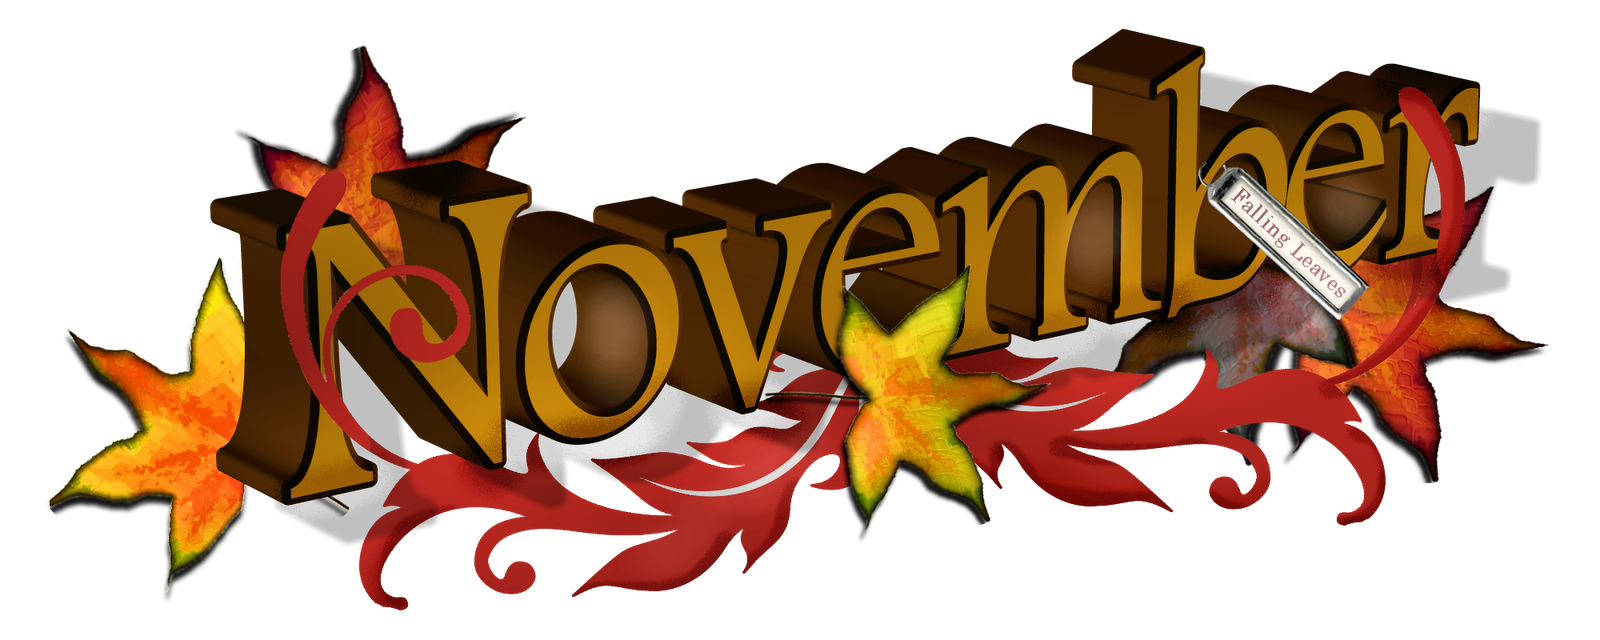 November clipart free download clip art on 6